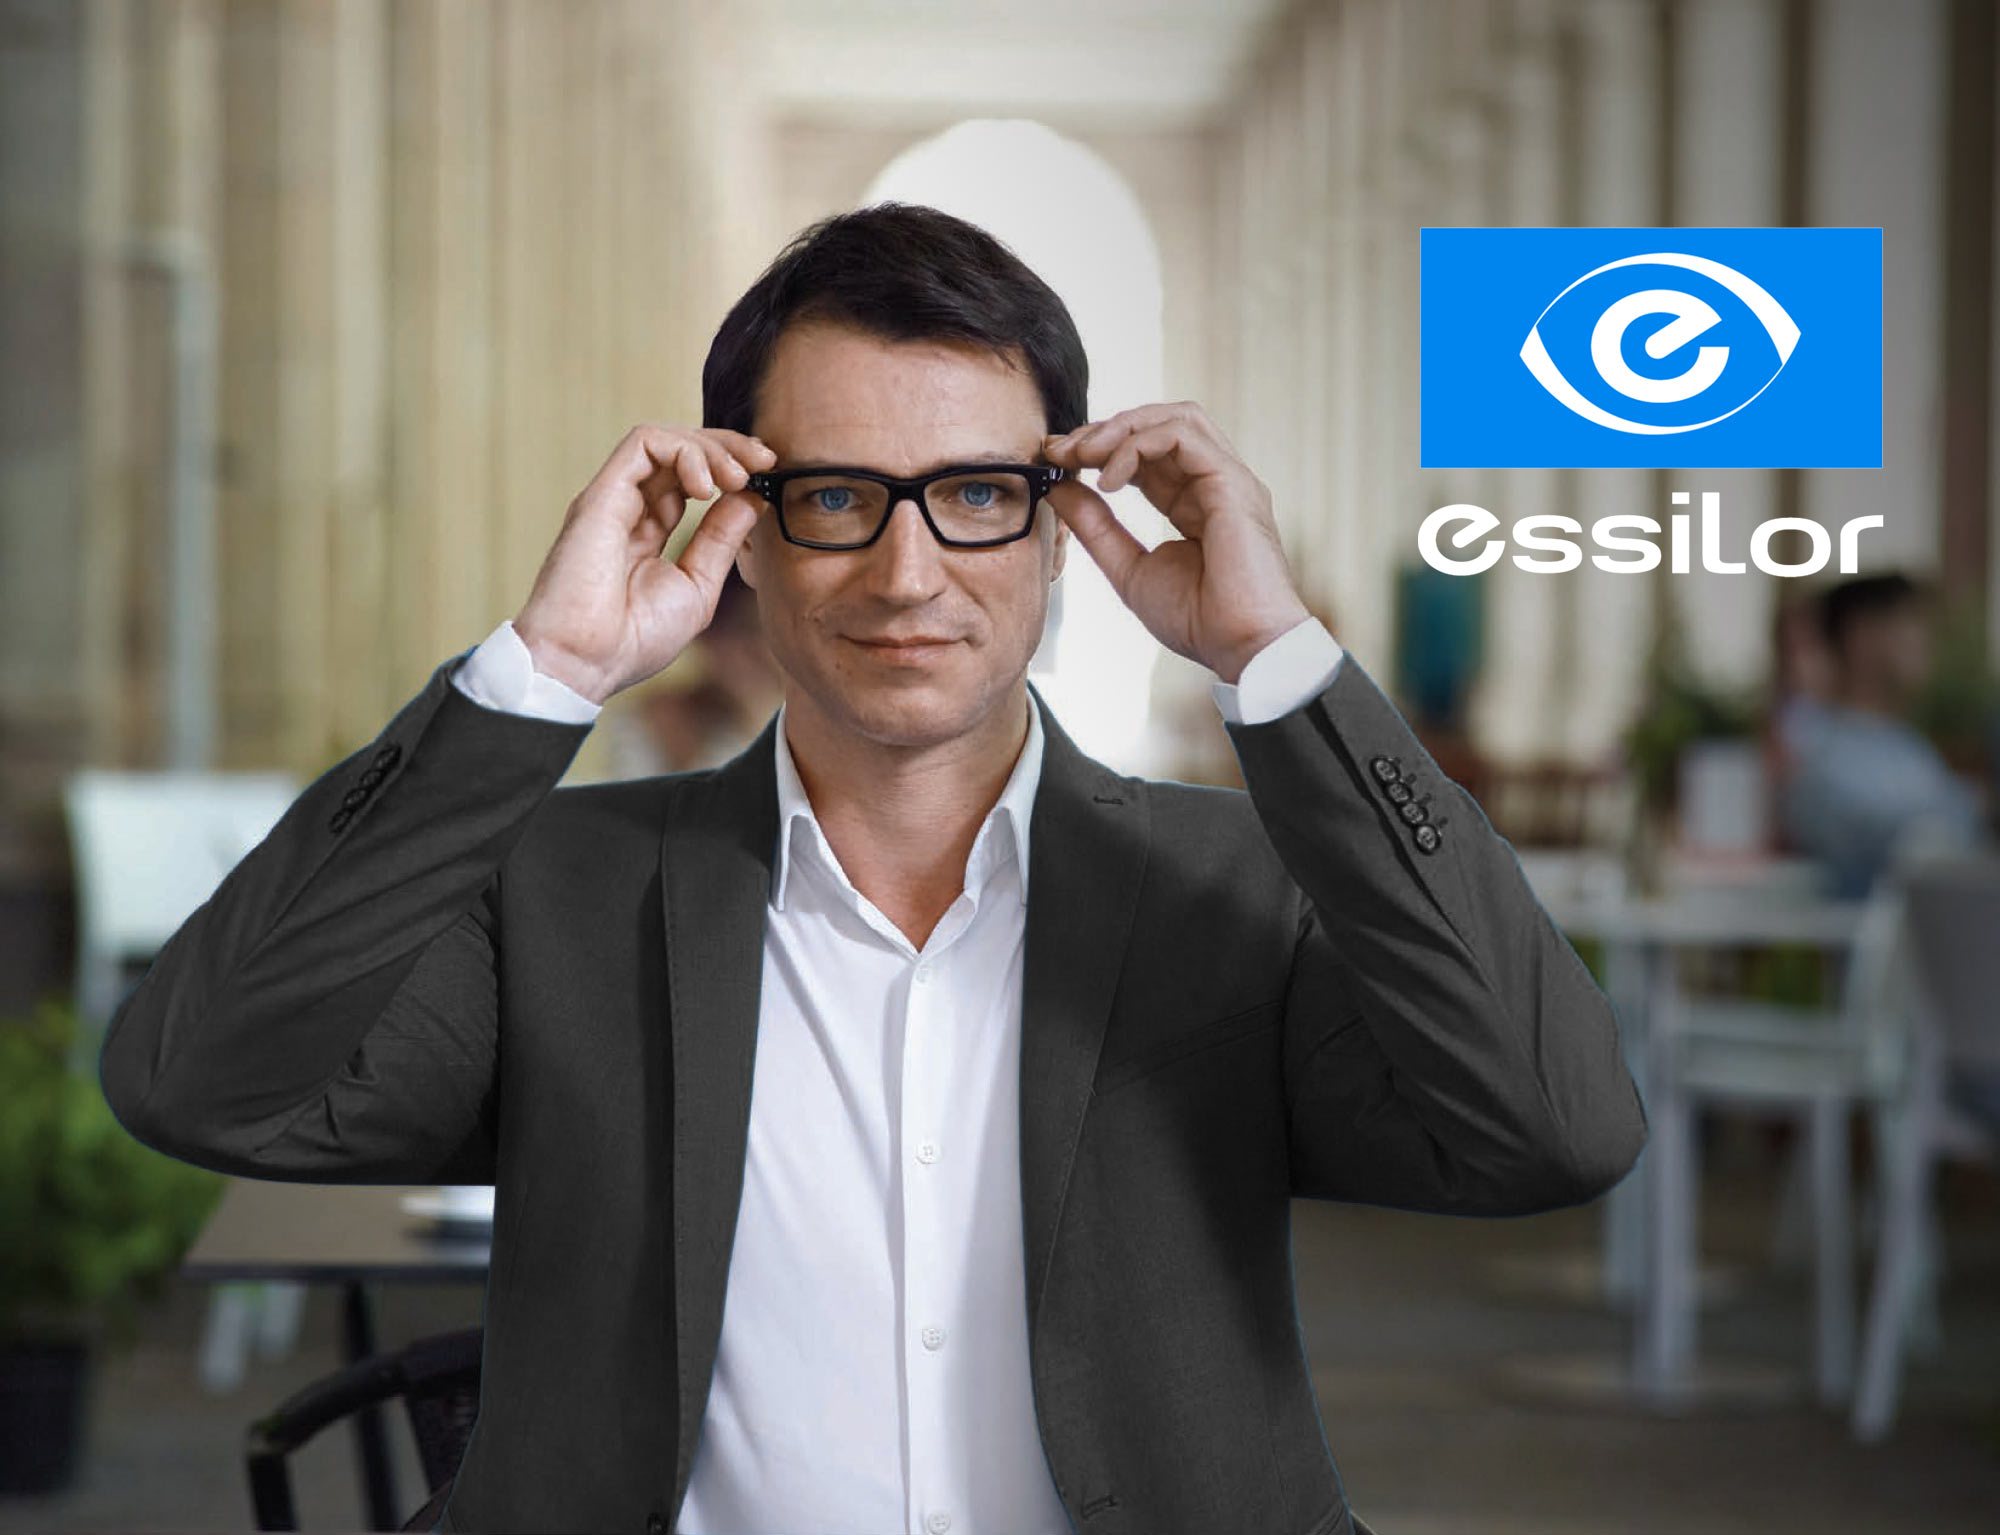 man in suit wearing essilor